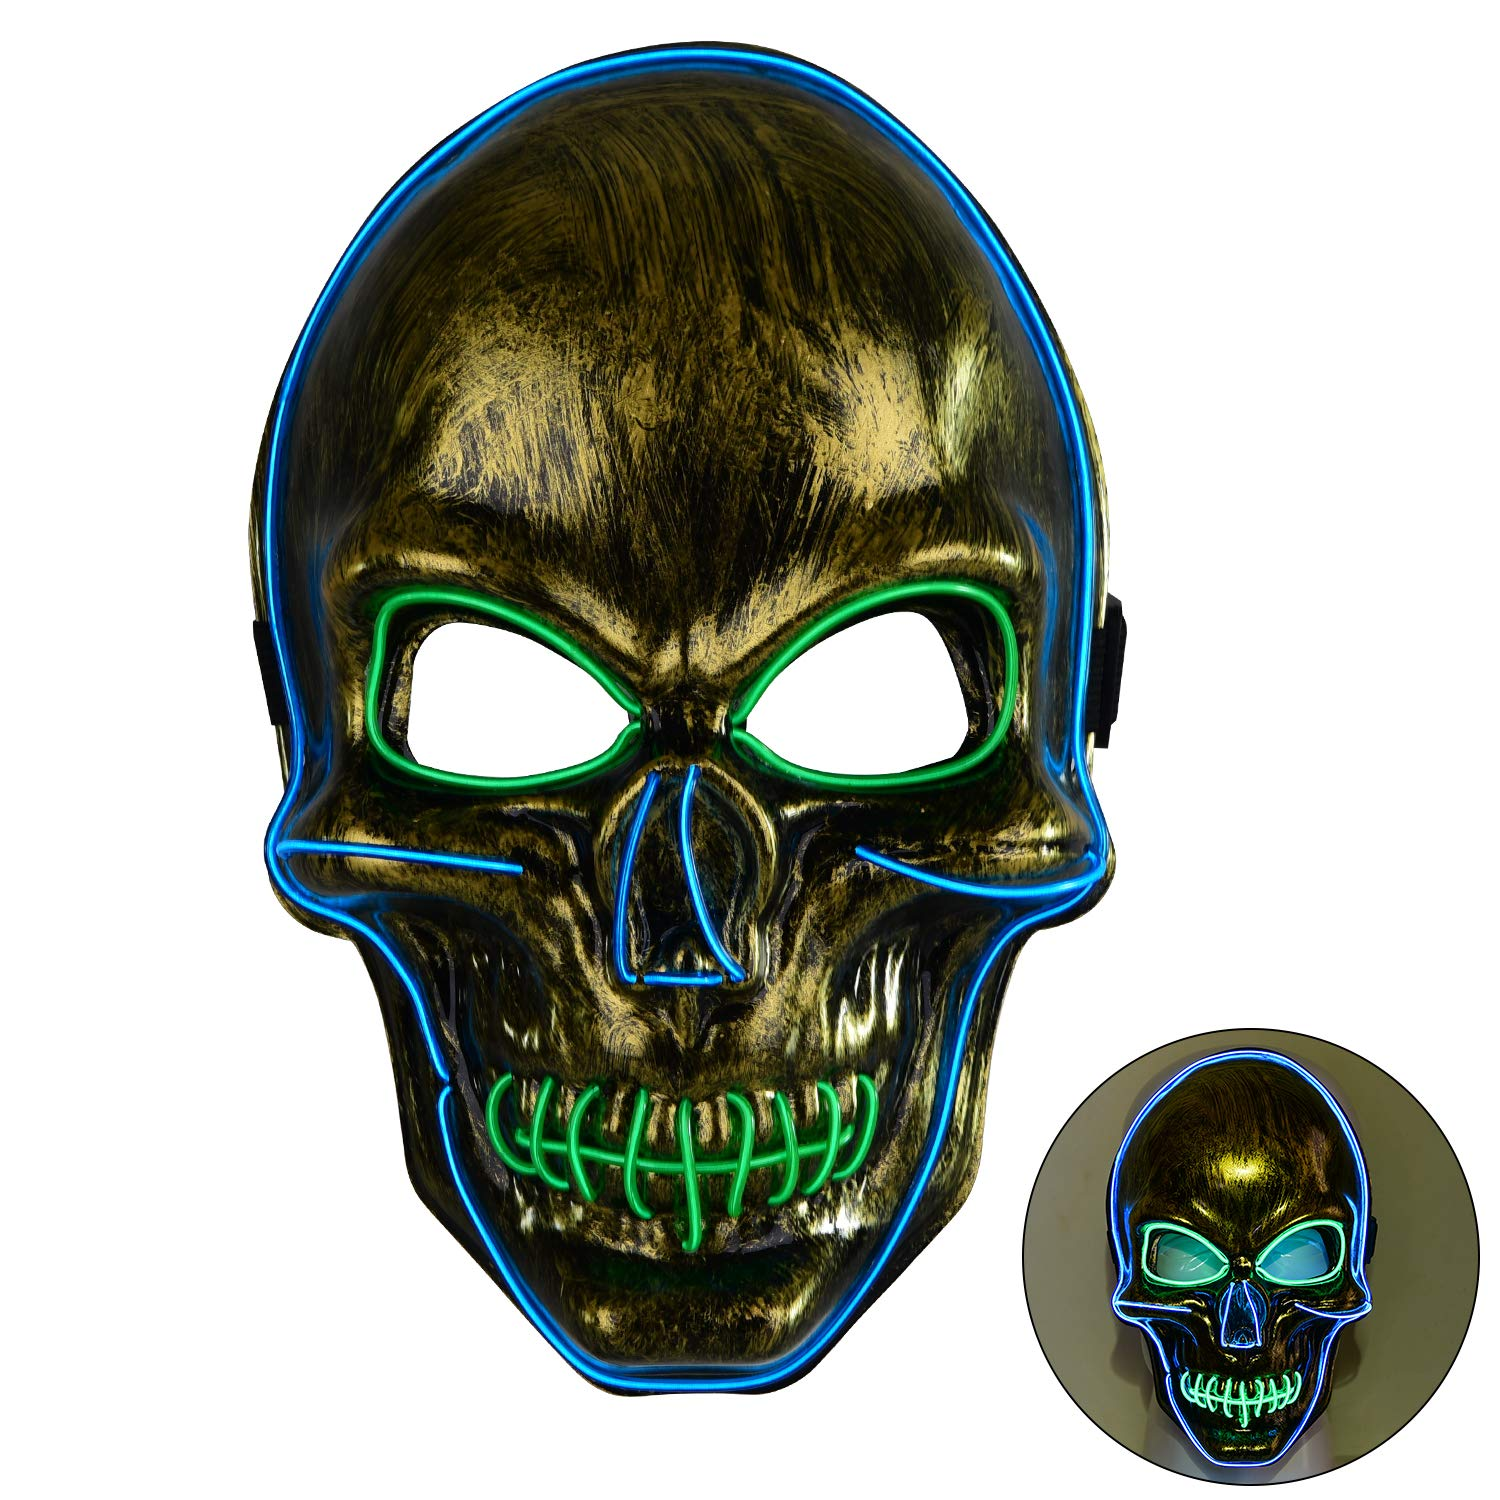 LED Halloween Mask,Scary mask with LED Light,Cosplay Glowing mask for Halloween Festival Party Gold